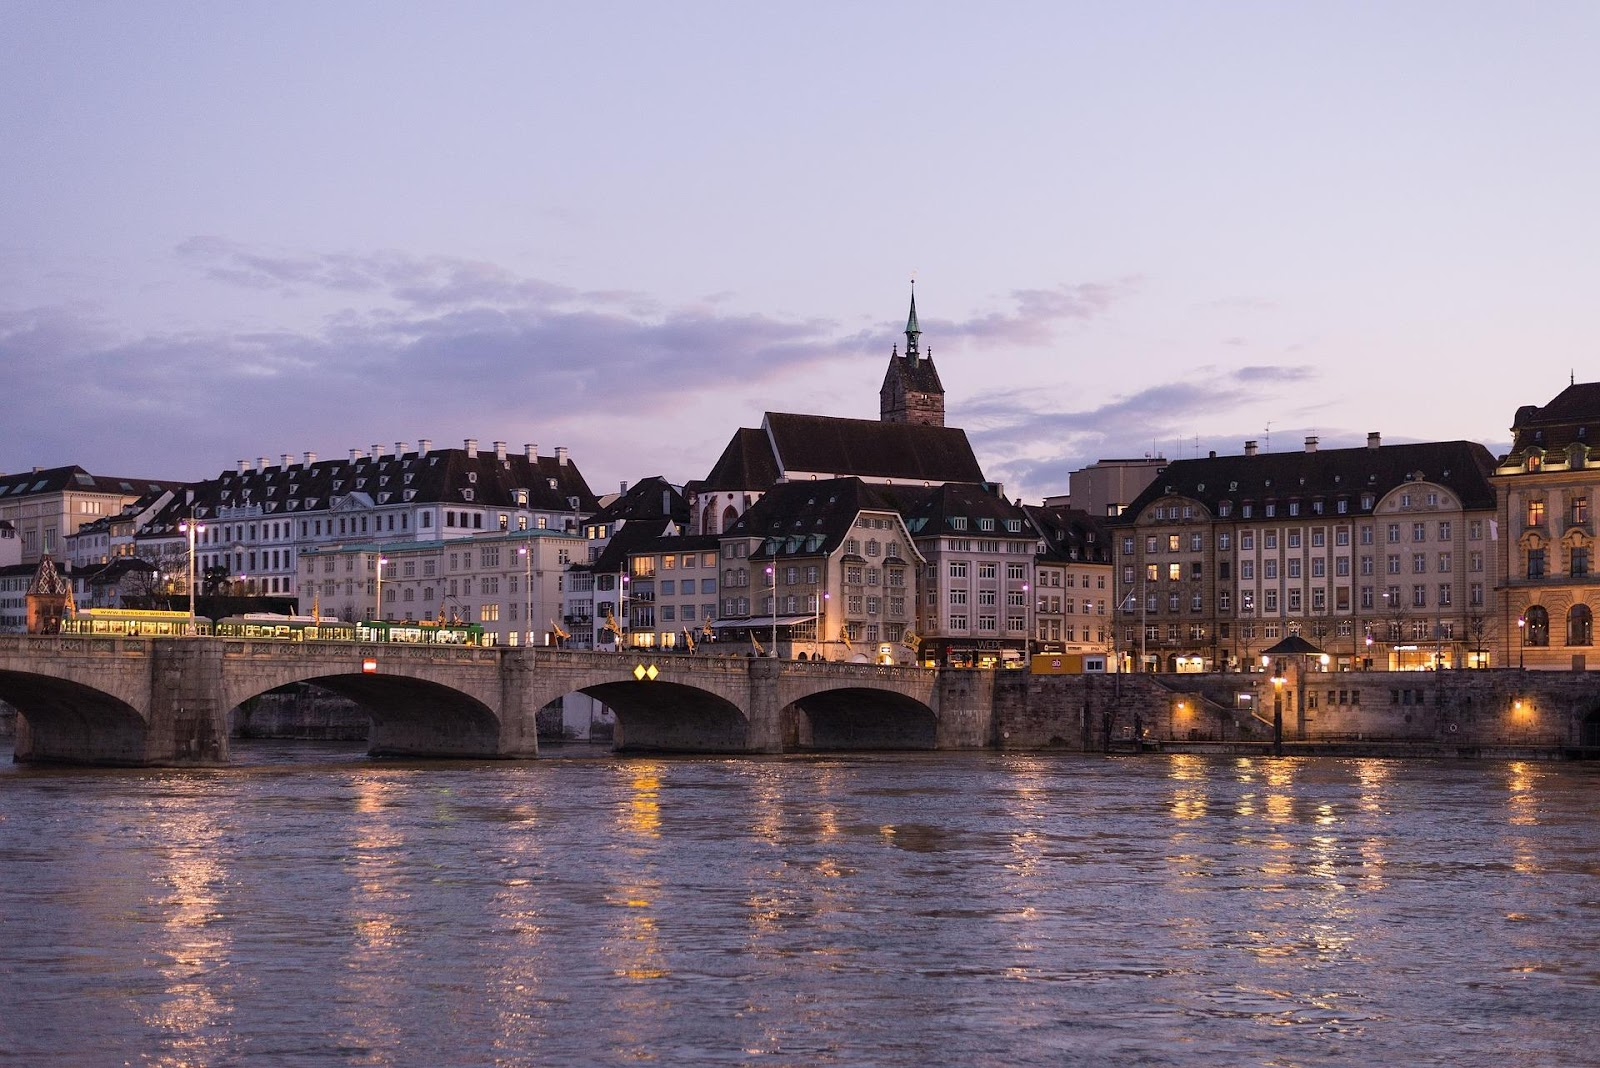 basel's old town medieval traditional architecture buildings seen from across bridge on the other side of river during sunset in switzerland